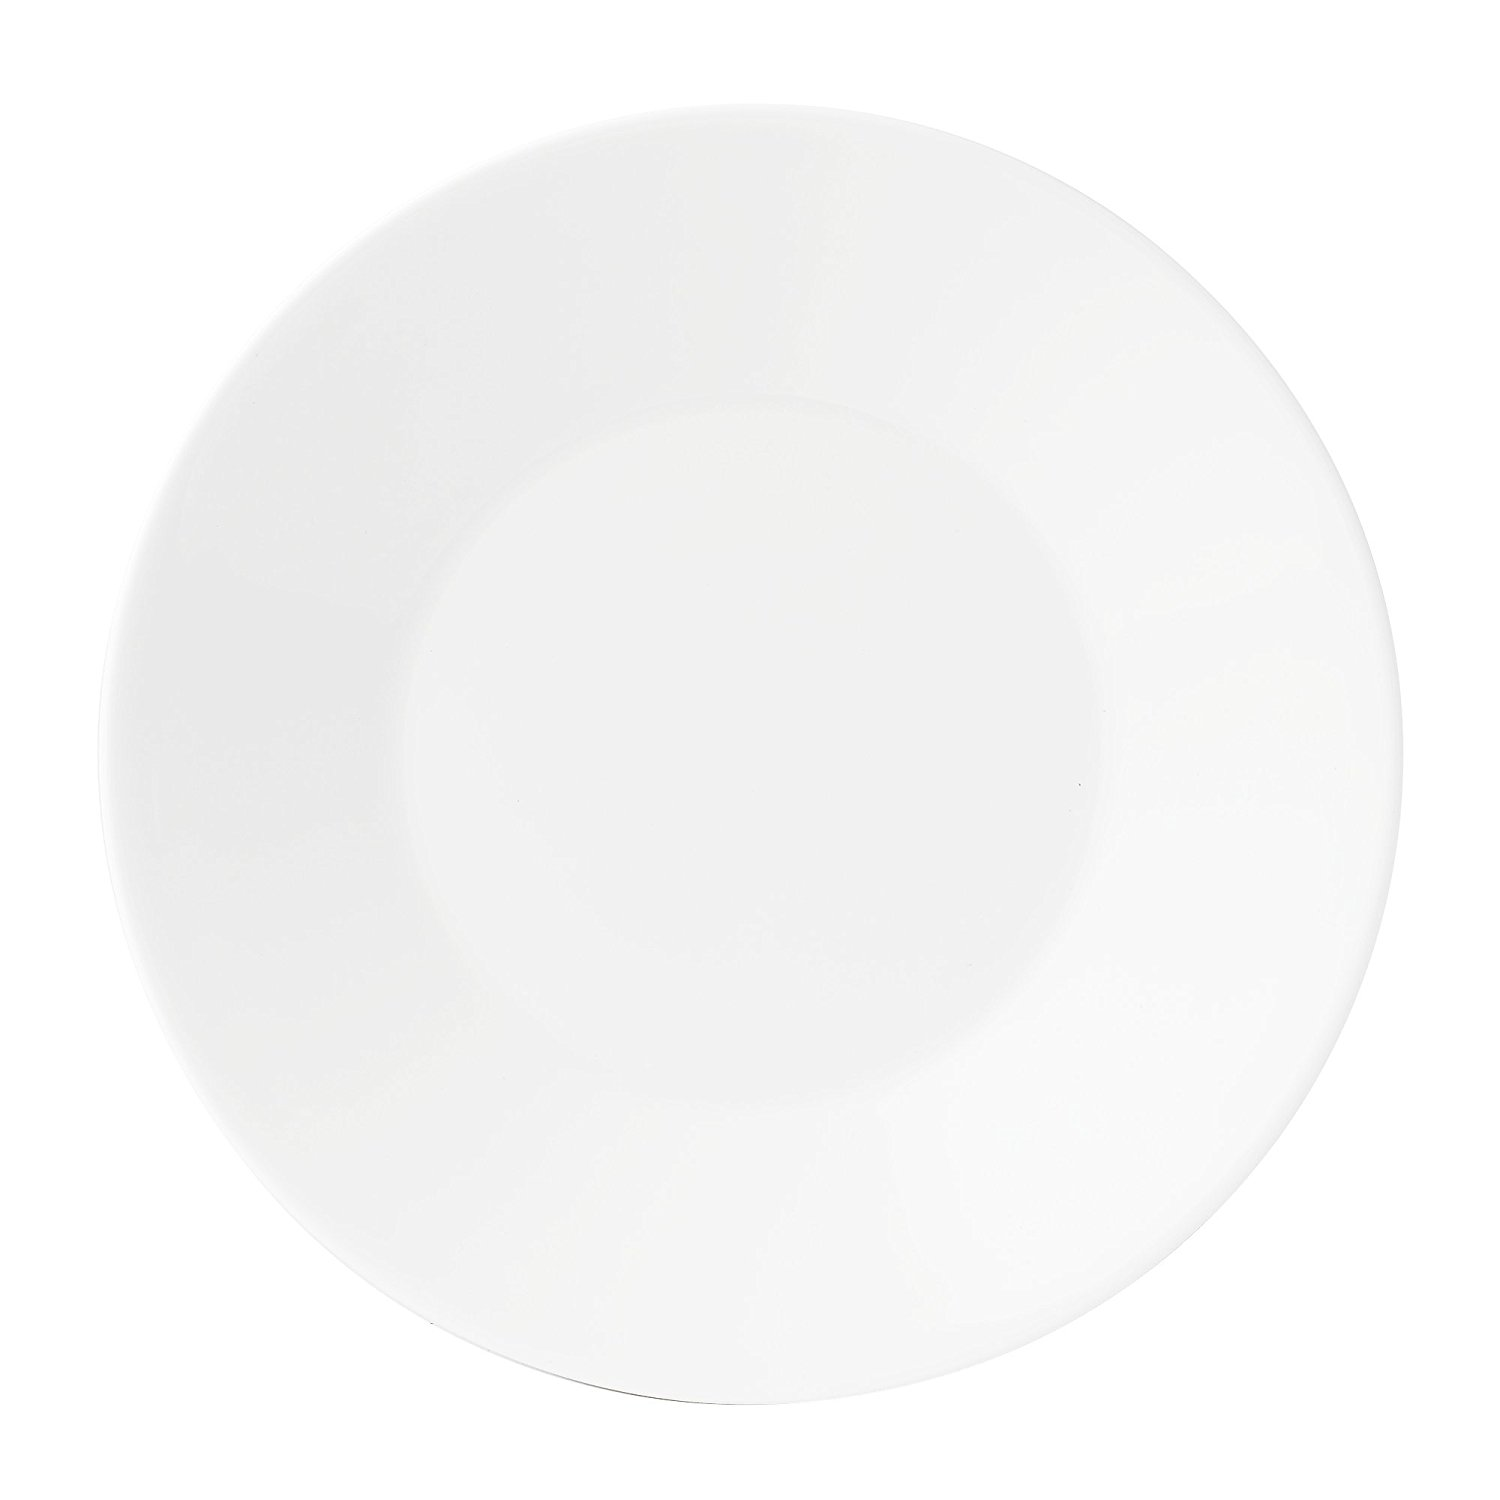 by Wedgwood White Bone China Bread & Butter Plate Plain 7\ by